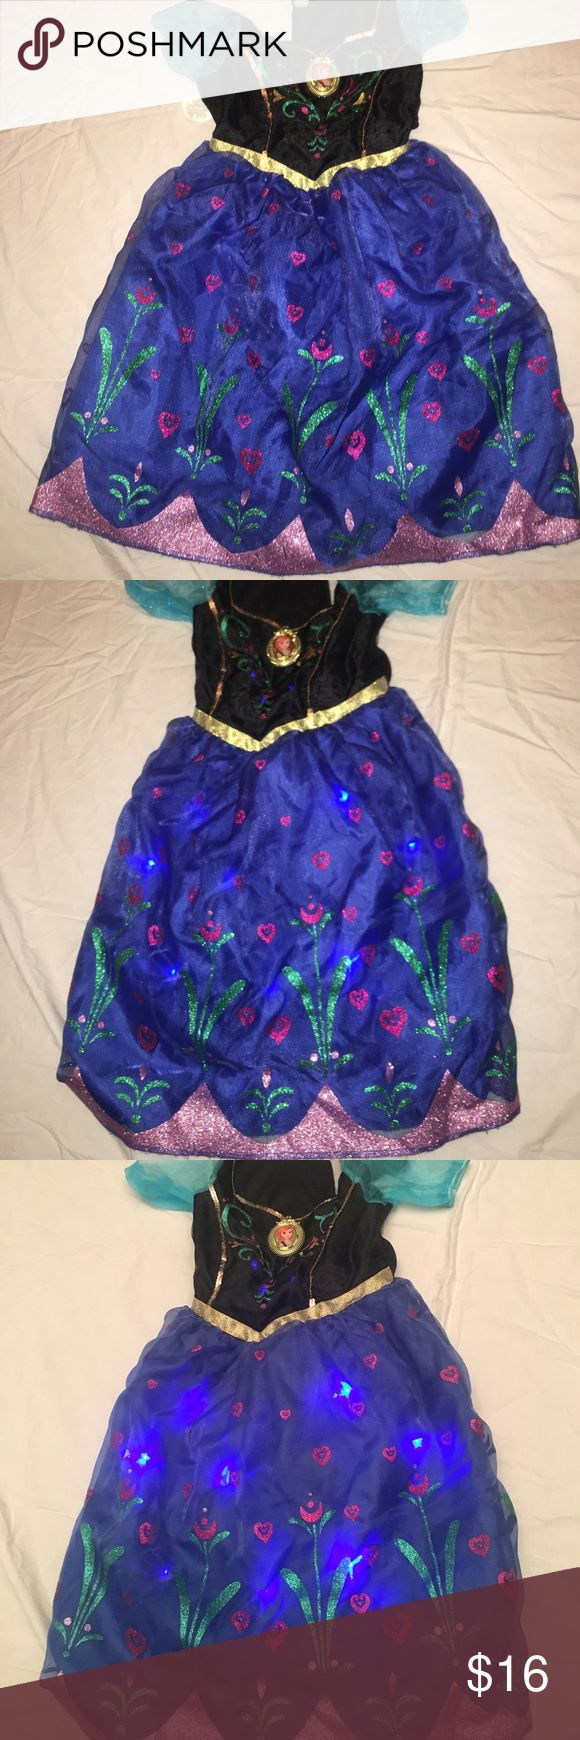 Frozen ana costume dress, sings and lights up Frozens Ana dress, sings For the First Time in Forever (don't worry you can turn it off) and whole skirt lights up with blue leds. worn once , great for dress up or halloween Disney Costumes